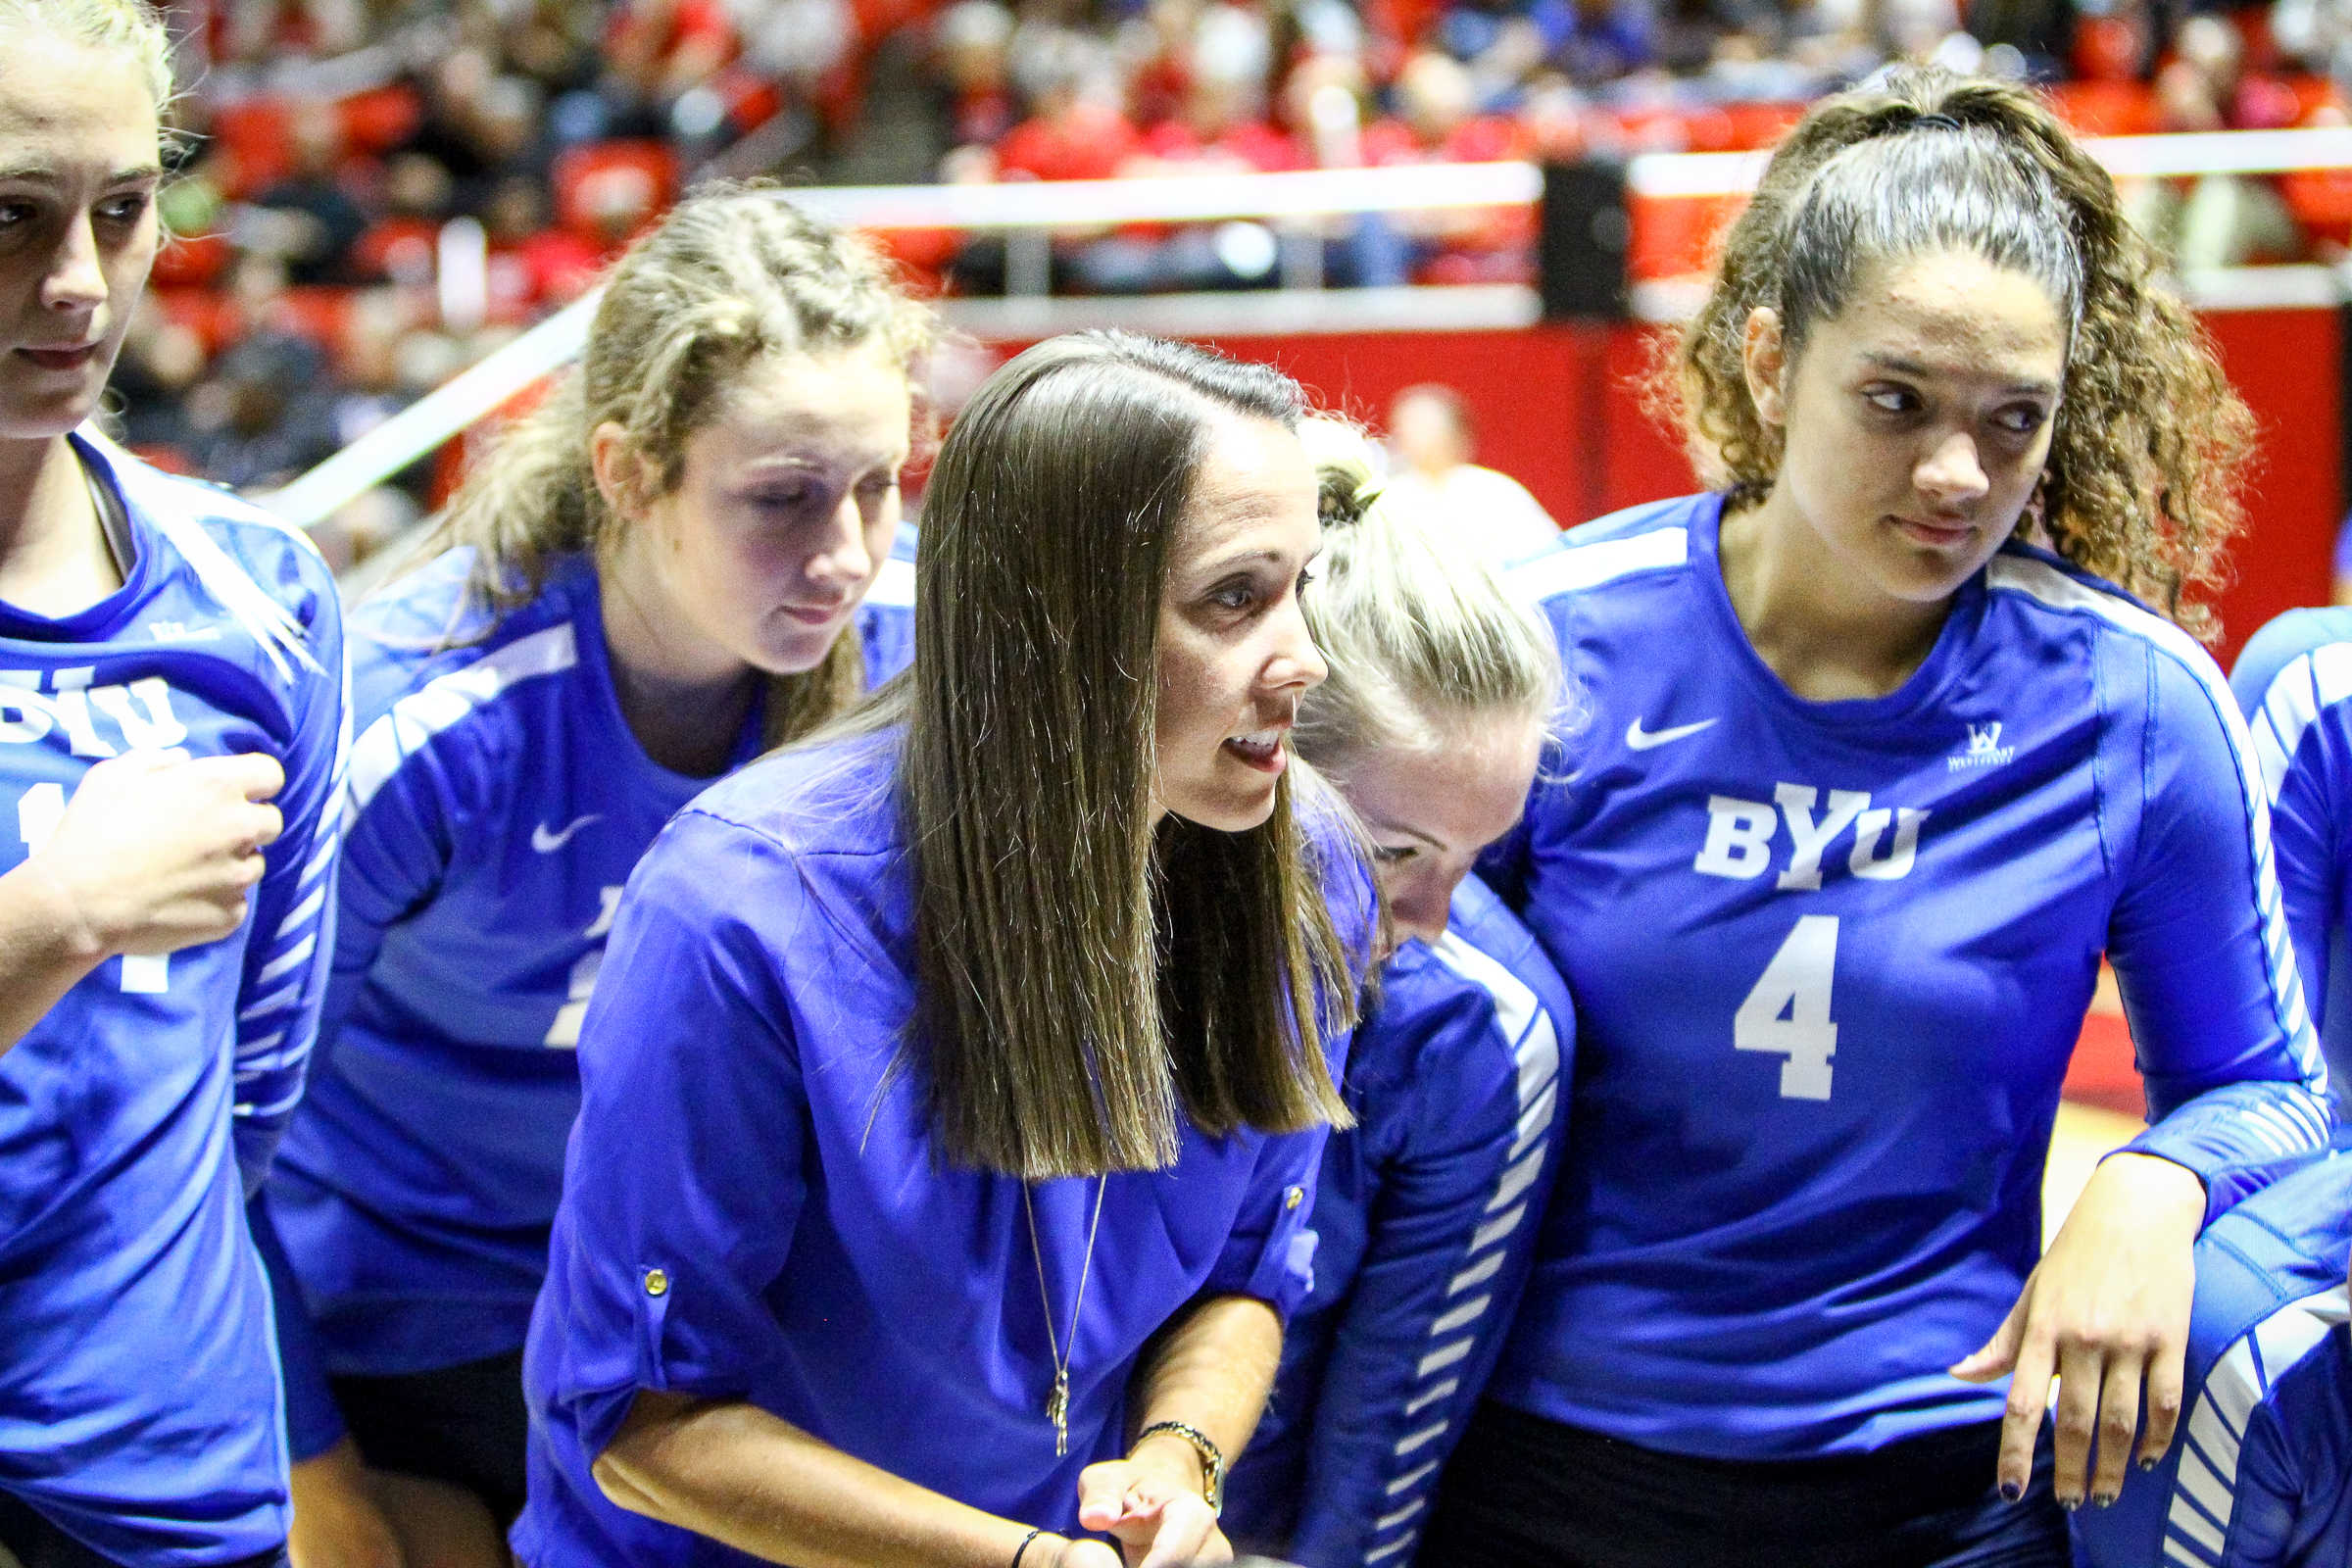 Brigham Young head volleyball coach Heather Olmstead talks with her players during a timeout at the Hunstman Center in Salt Lake City on Sept. 14, 2017.